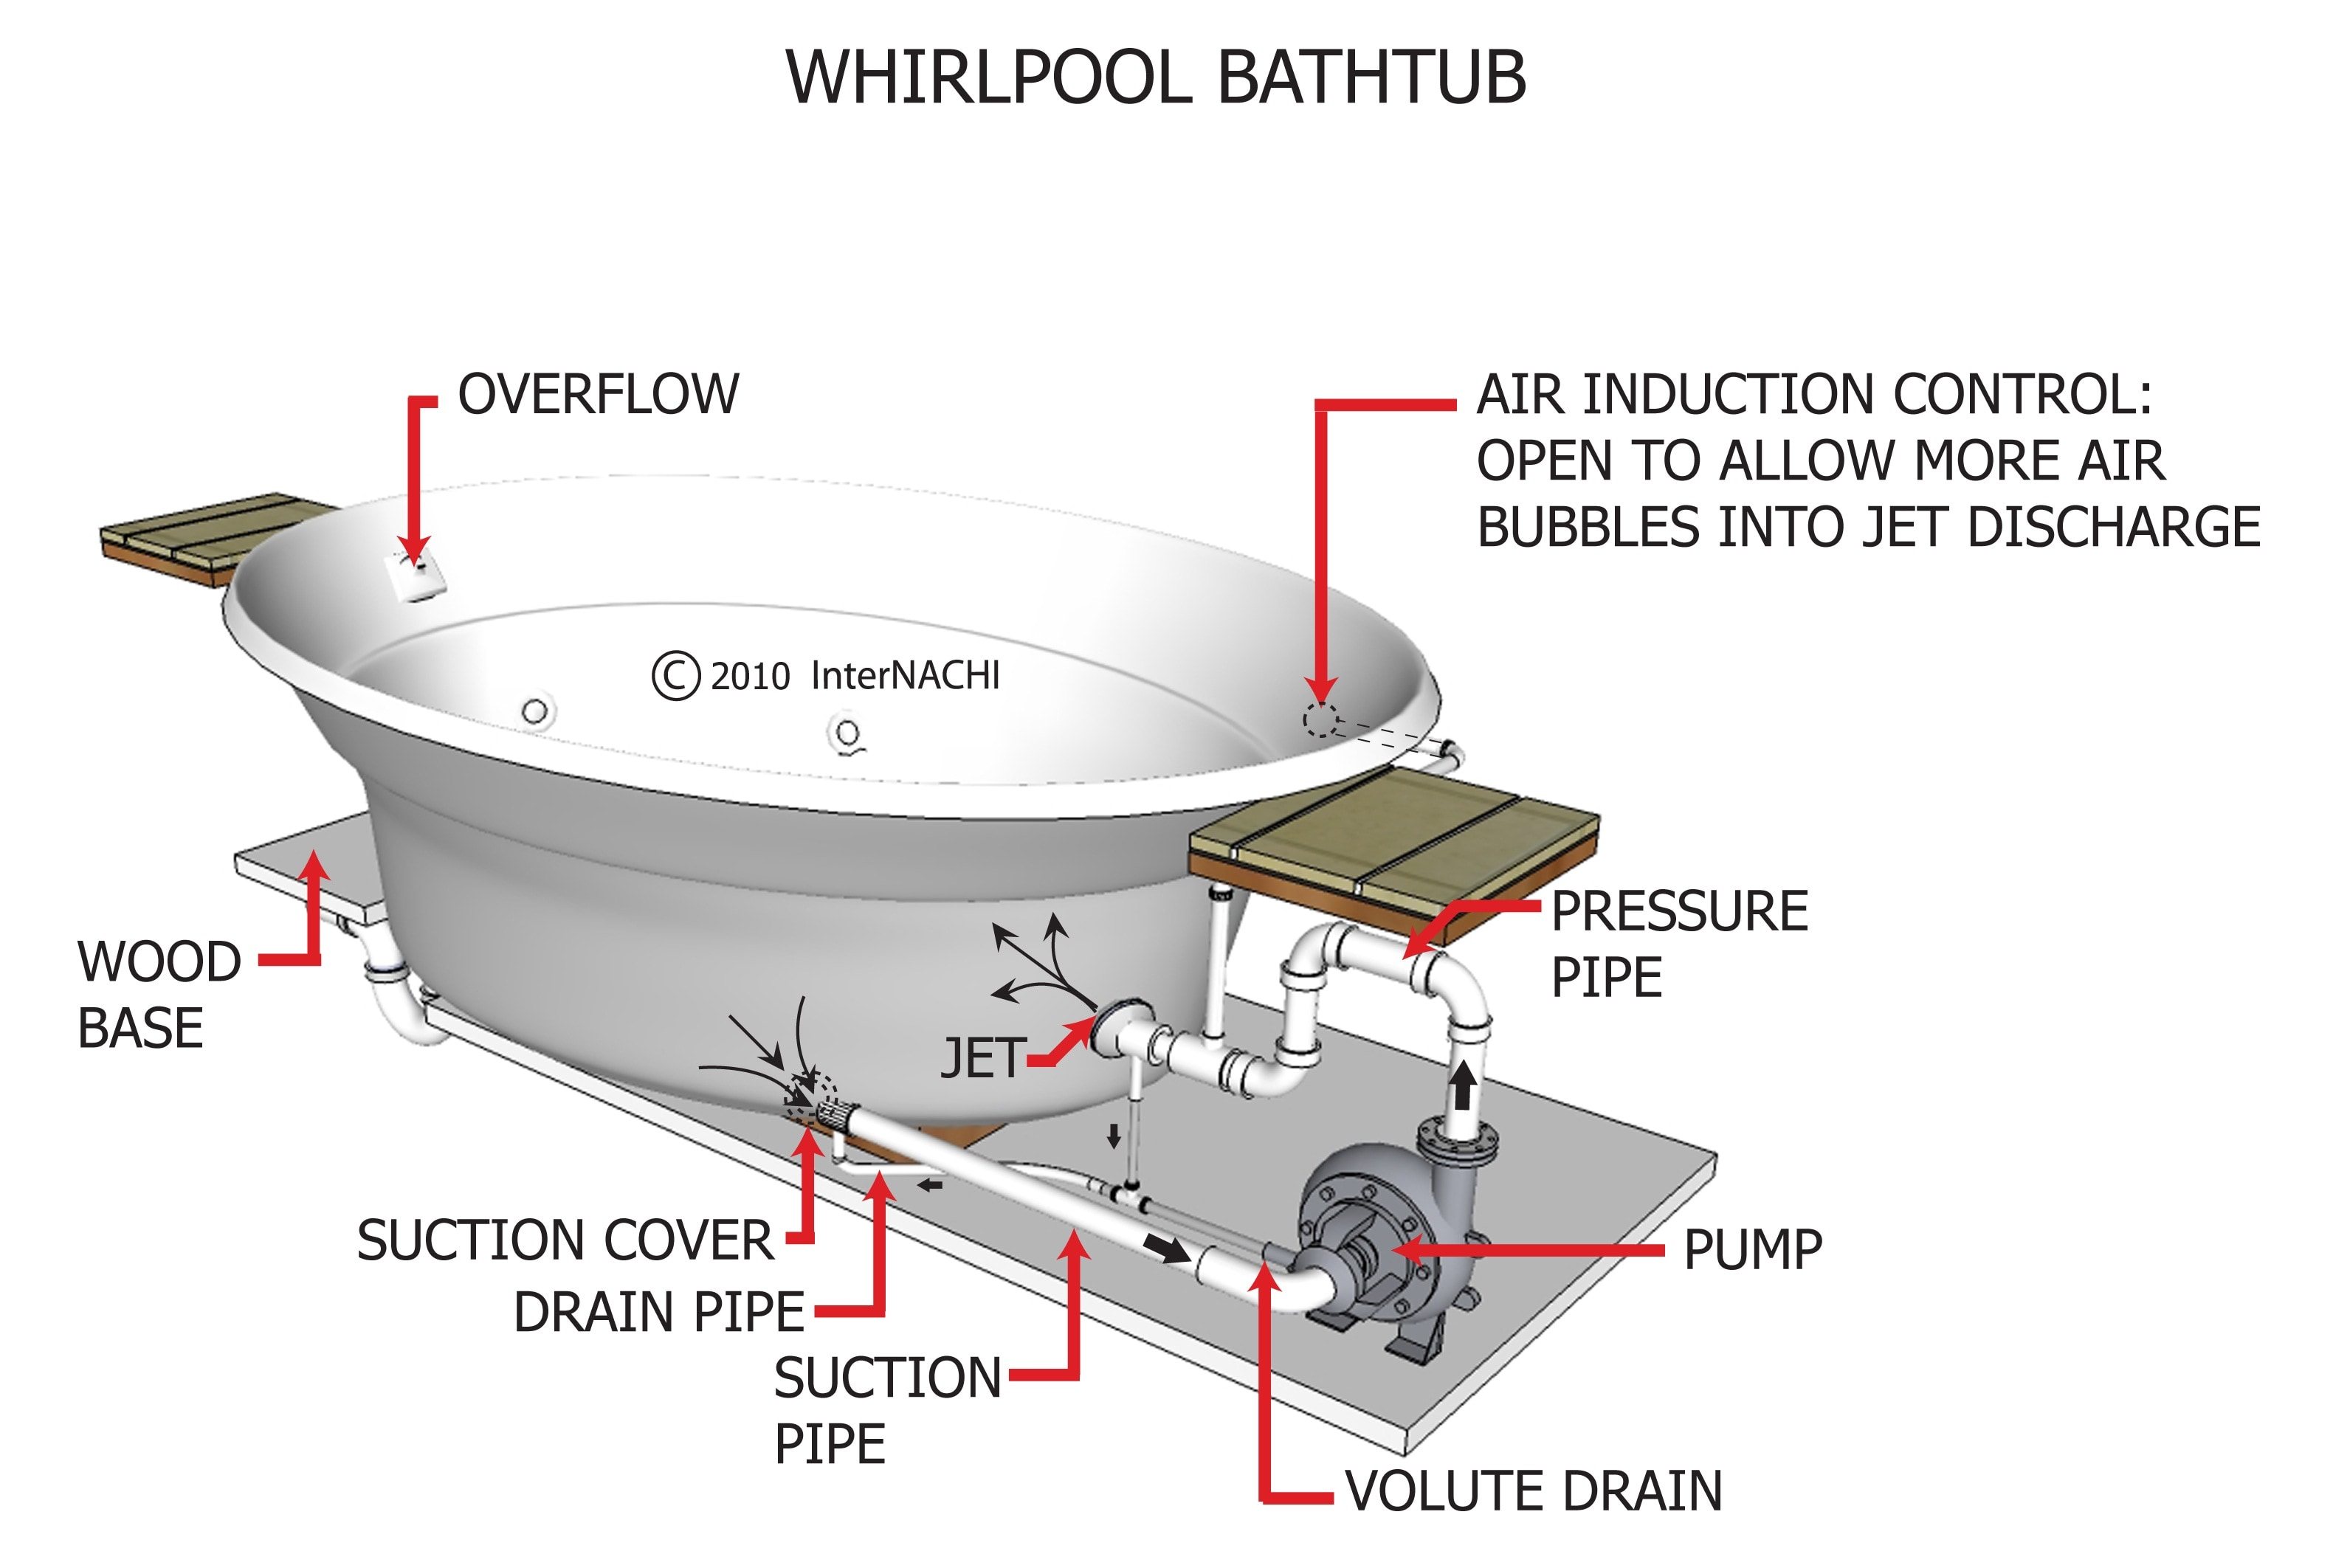 Whirlpool bathtub.